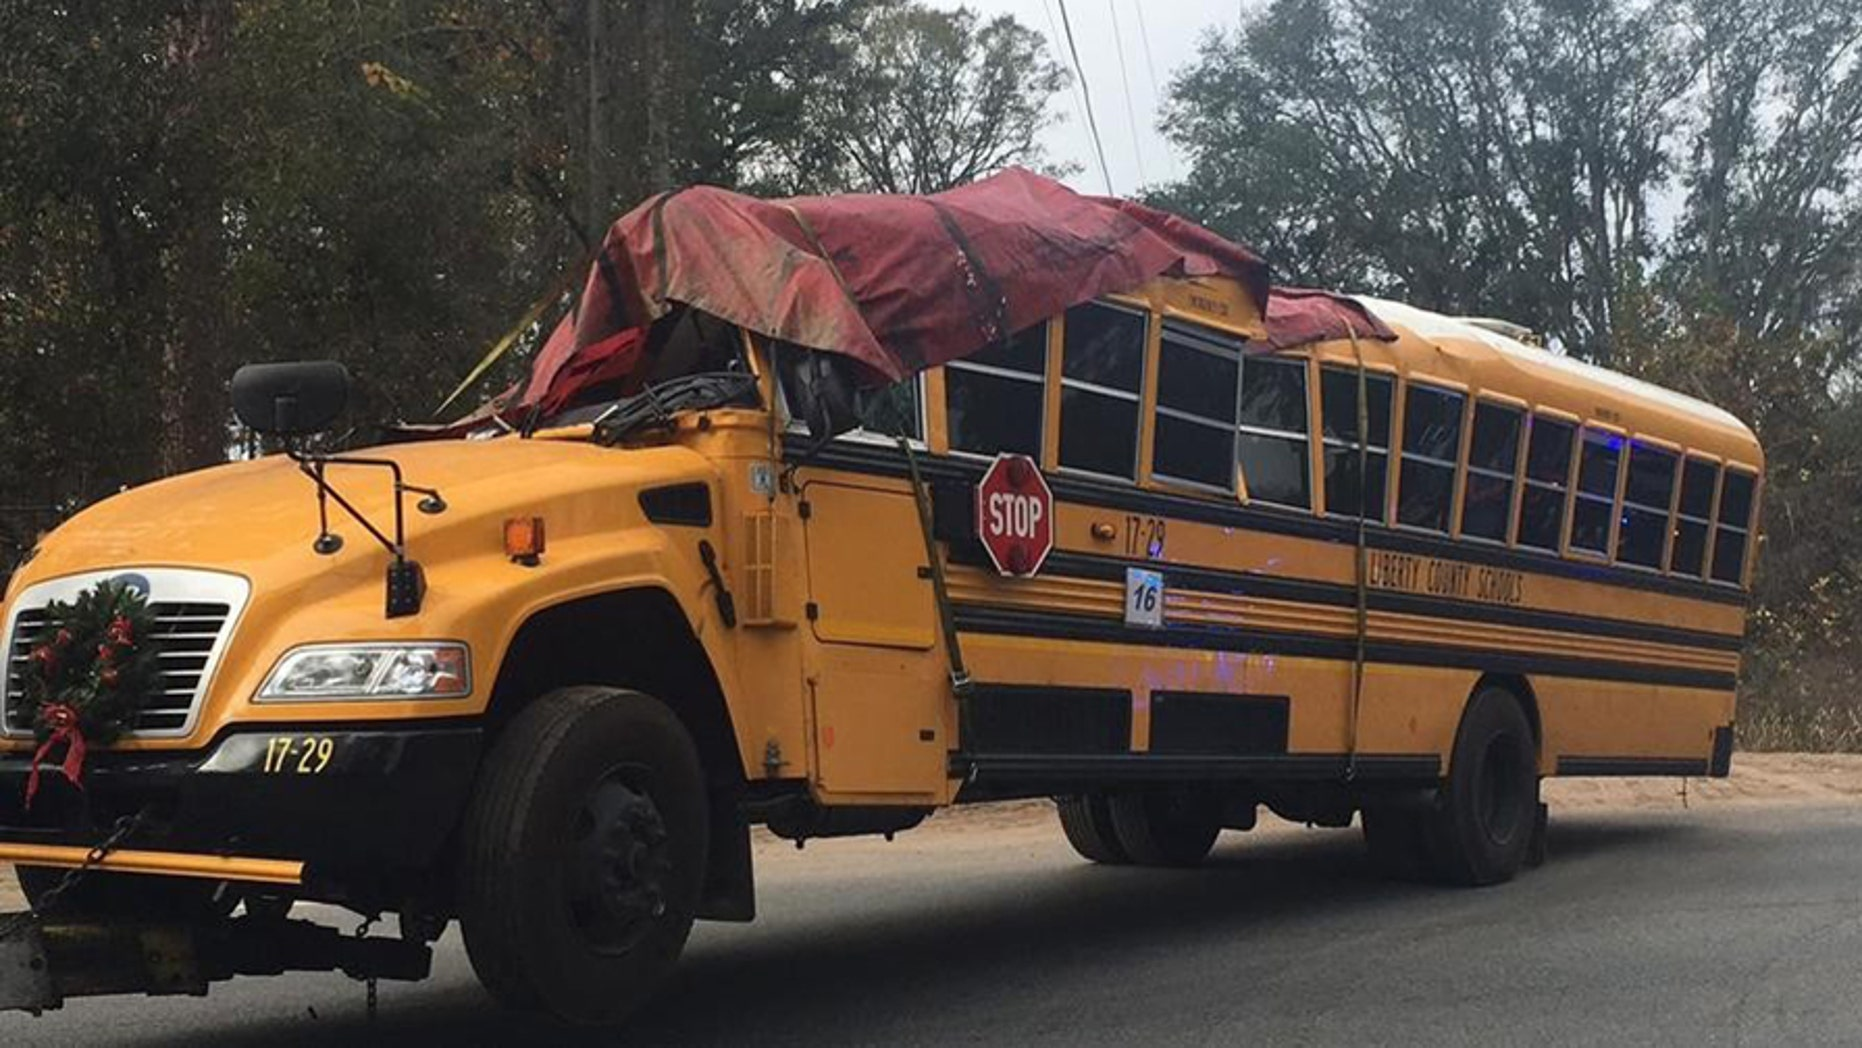 A 5-year-old girl was killed and 22 others were hurt after a school bus crashed into a tree in Georgia.